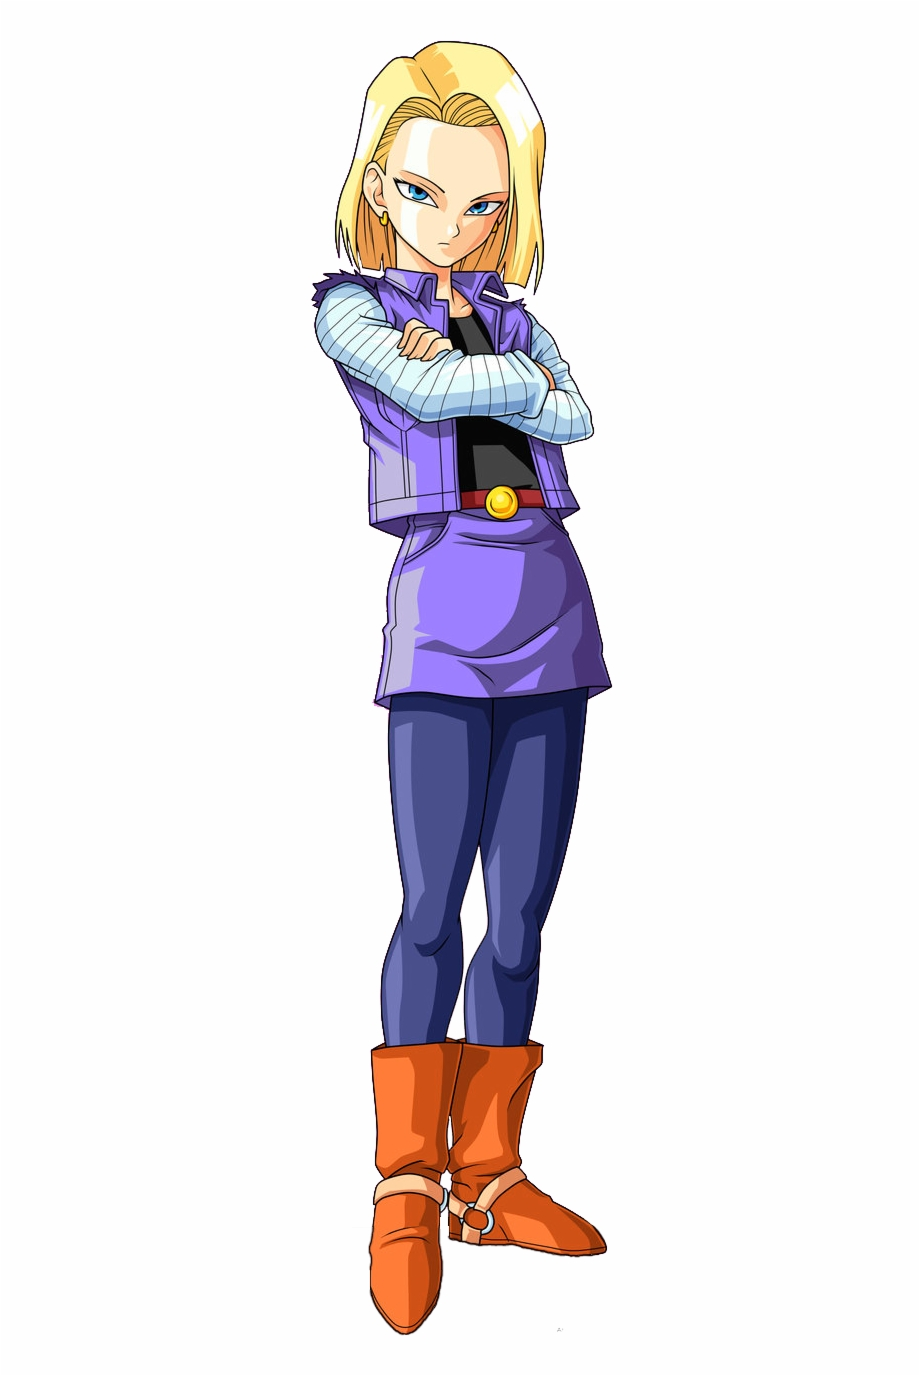 Android 18 Png - Android 18 Png - Android 18 17 Png, Transparent Png Download For ...